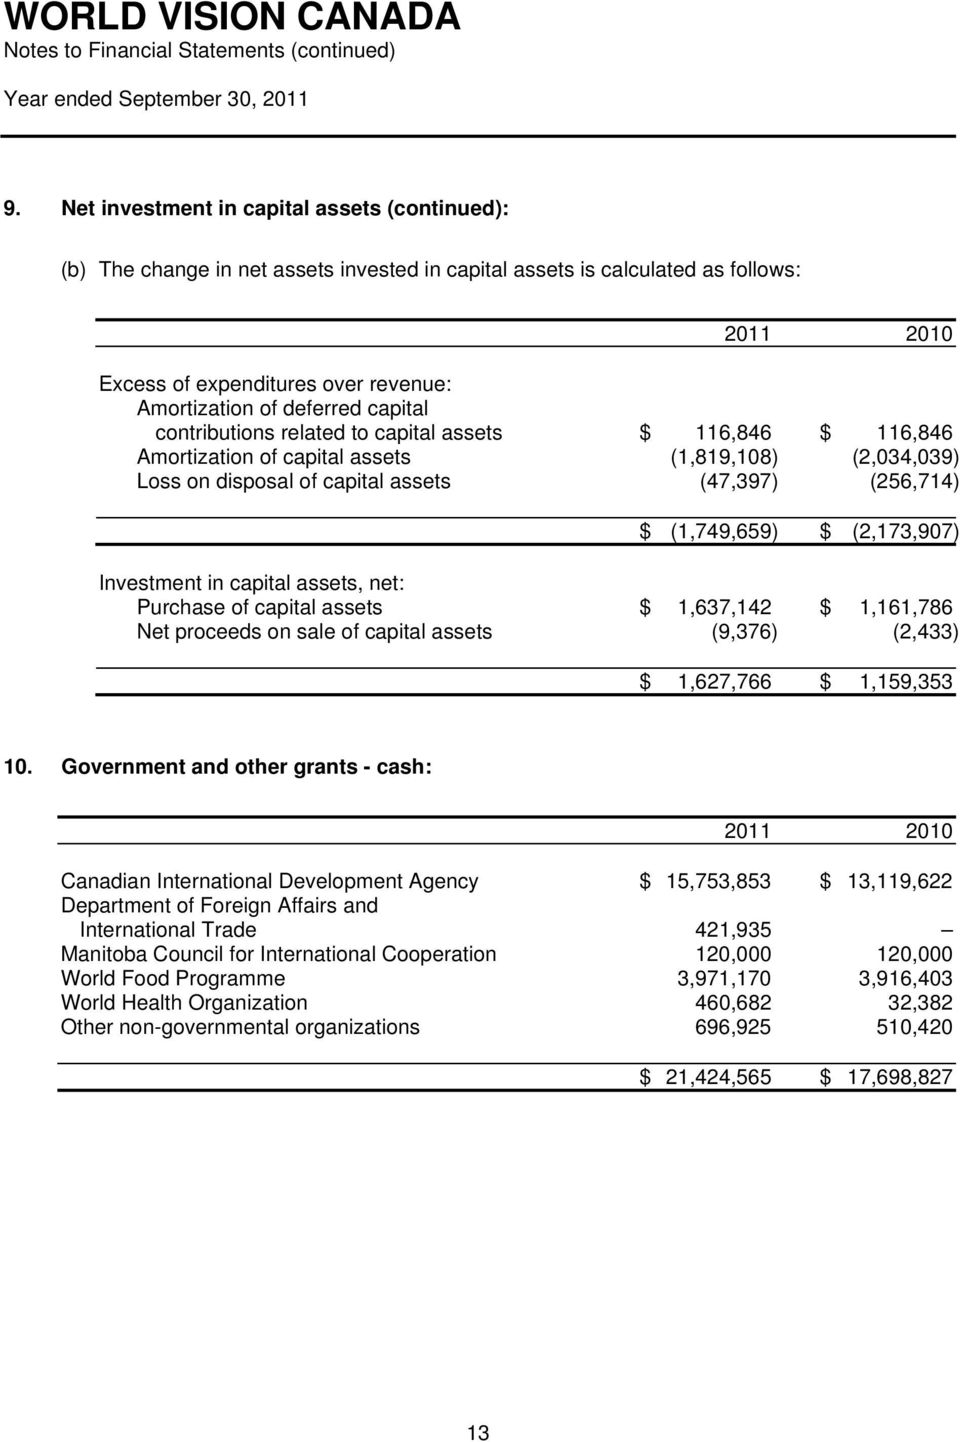 (2,173,907) Investment in capital assets, net: Purchase of capital assets $ 1,637,142 $ 1,161,786 Net proceeds on sale of capital assets (9,376) (2,433) $ 1,627,766 $ 1,159,353 10.